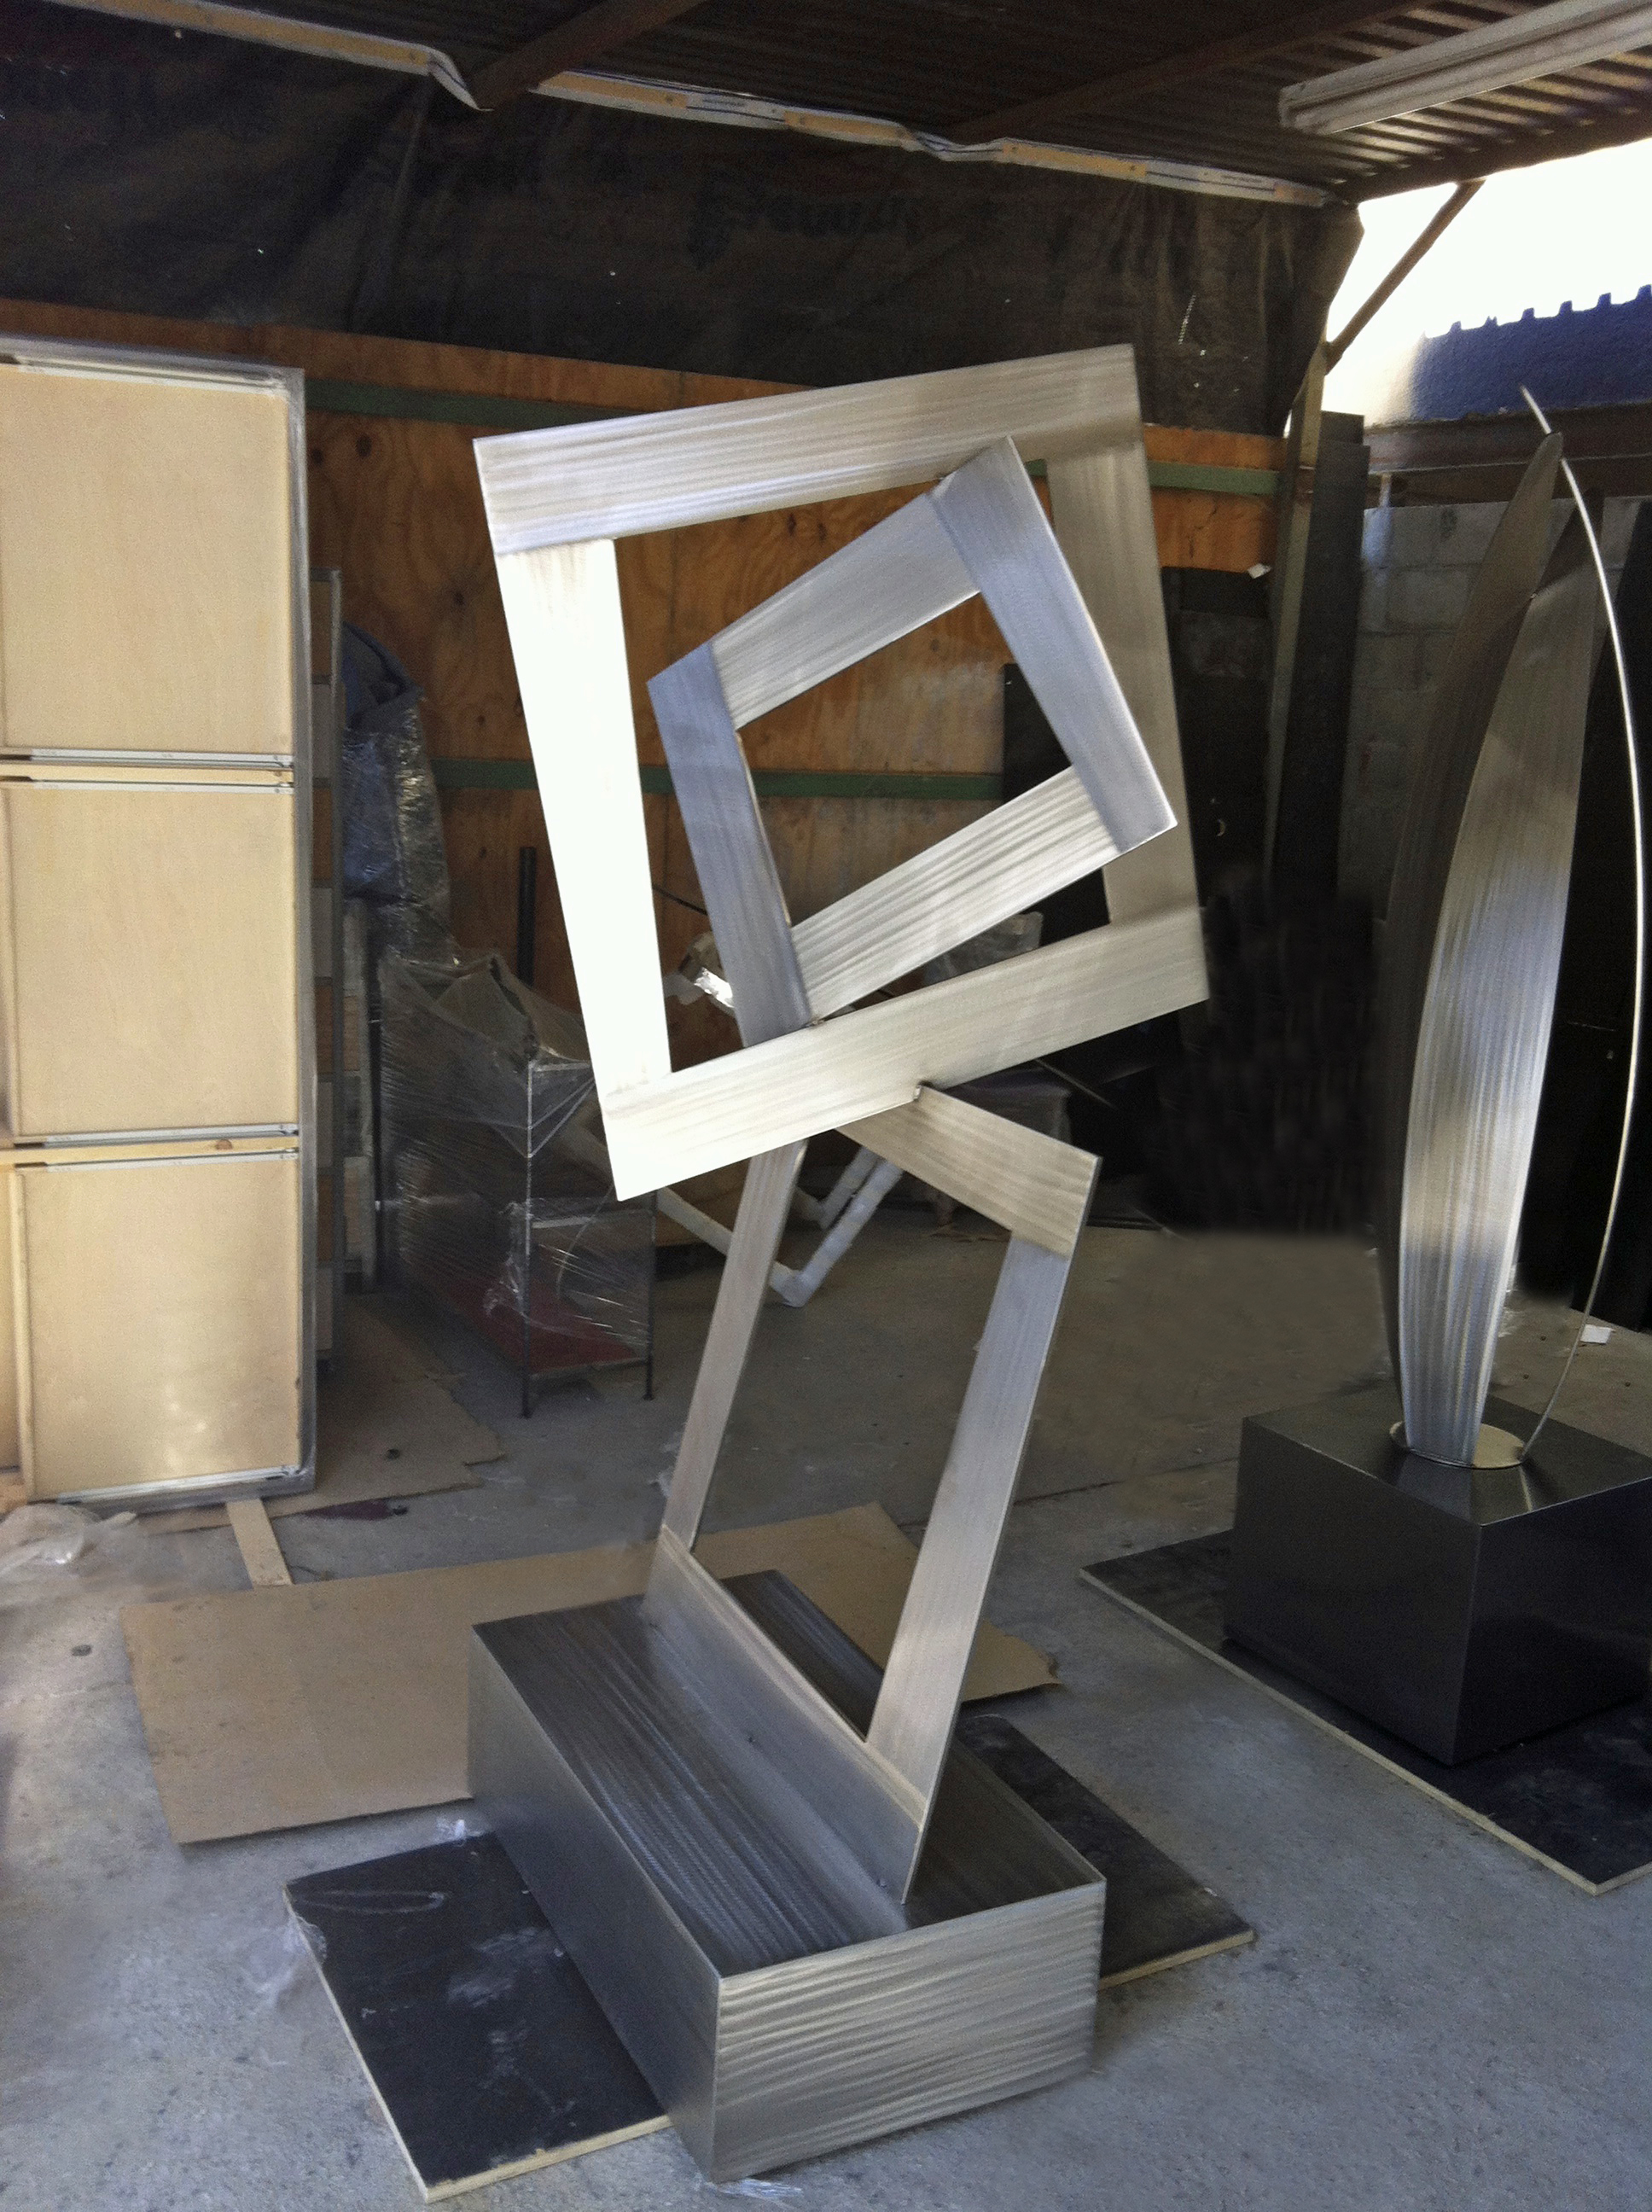 Terra Sculpture Modern Abstract Outdoor Sculpture Studio